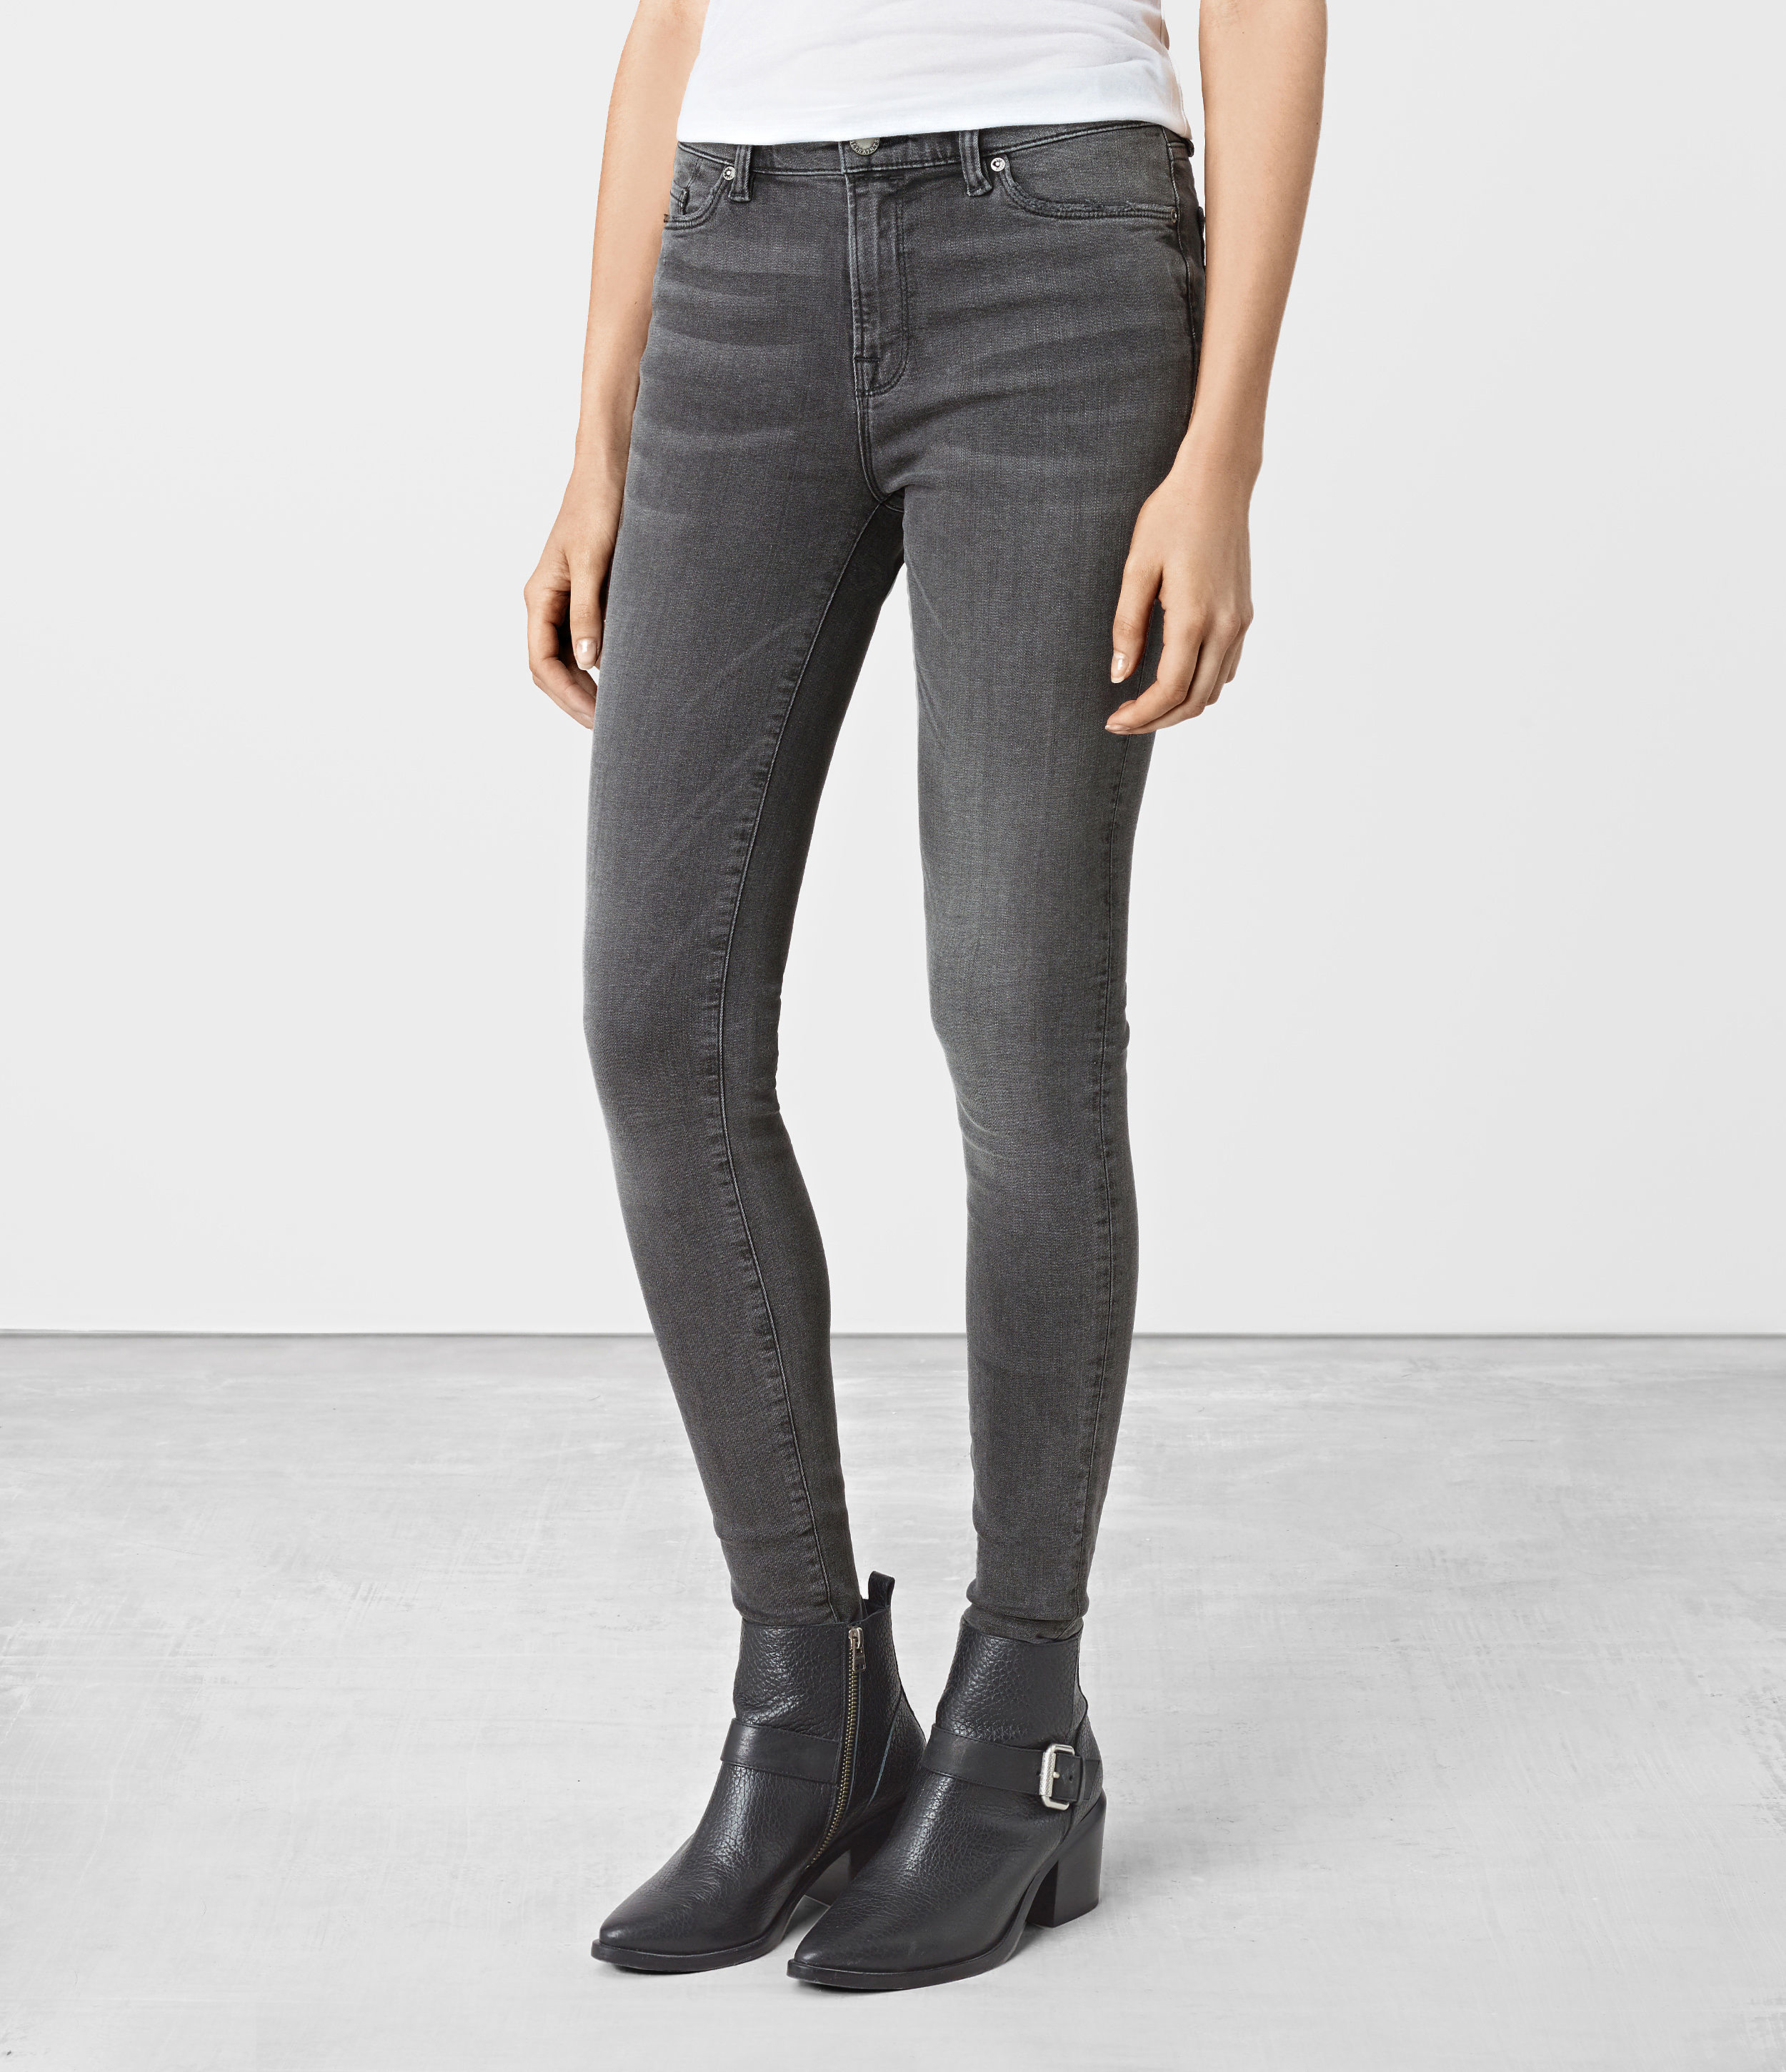 AllSaints Denim Grace Jeans in Dark Grey (Grey)